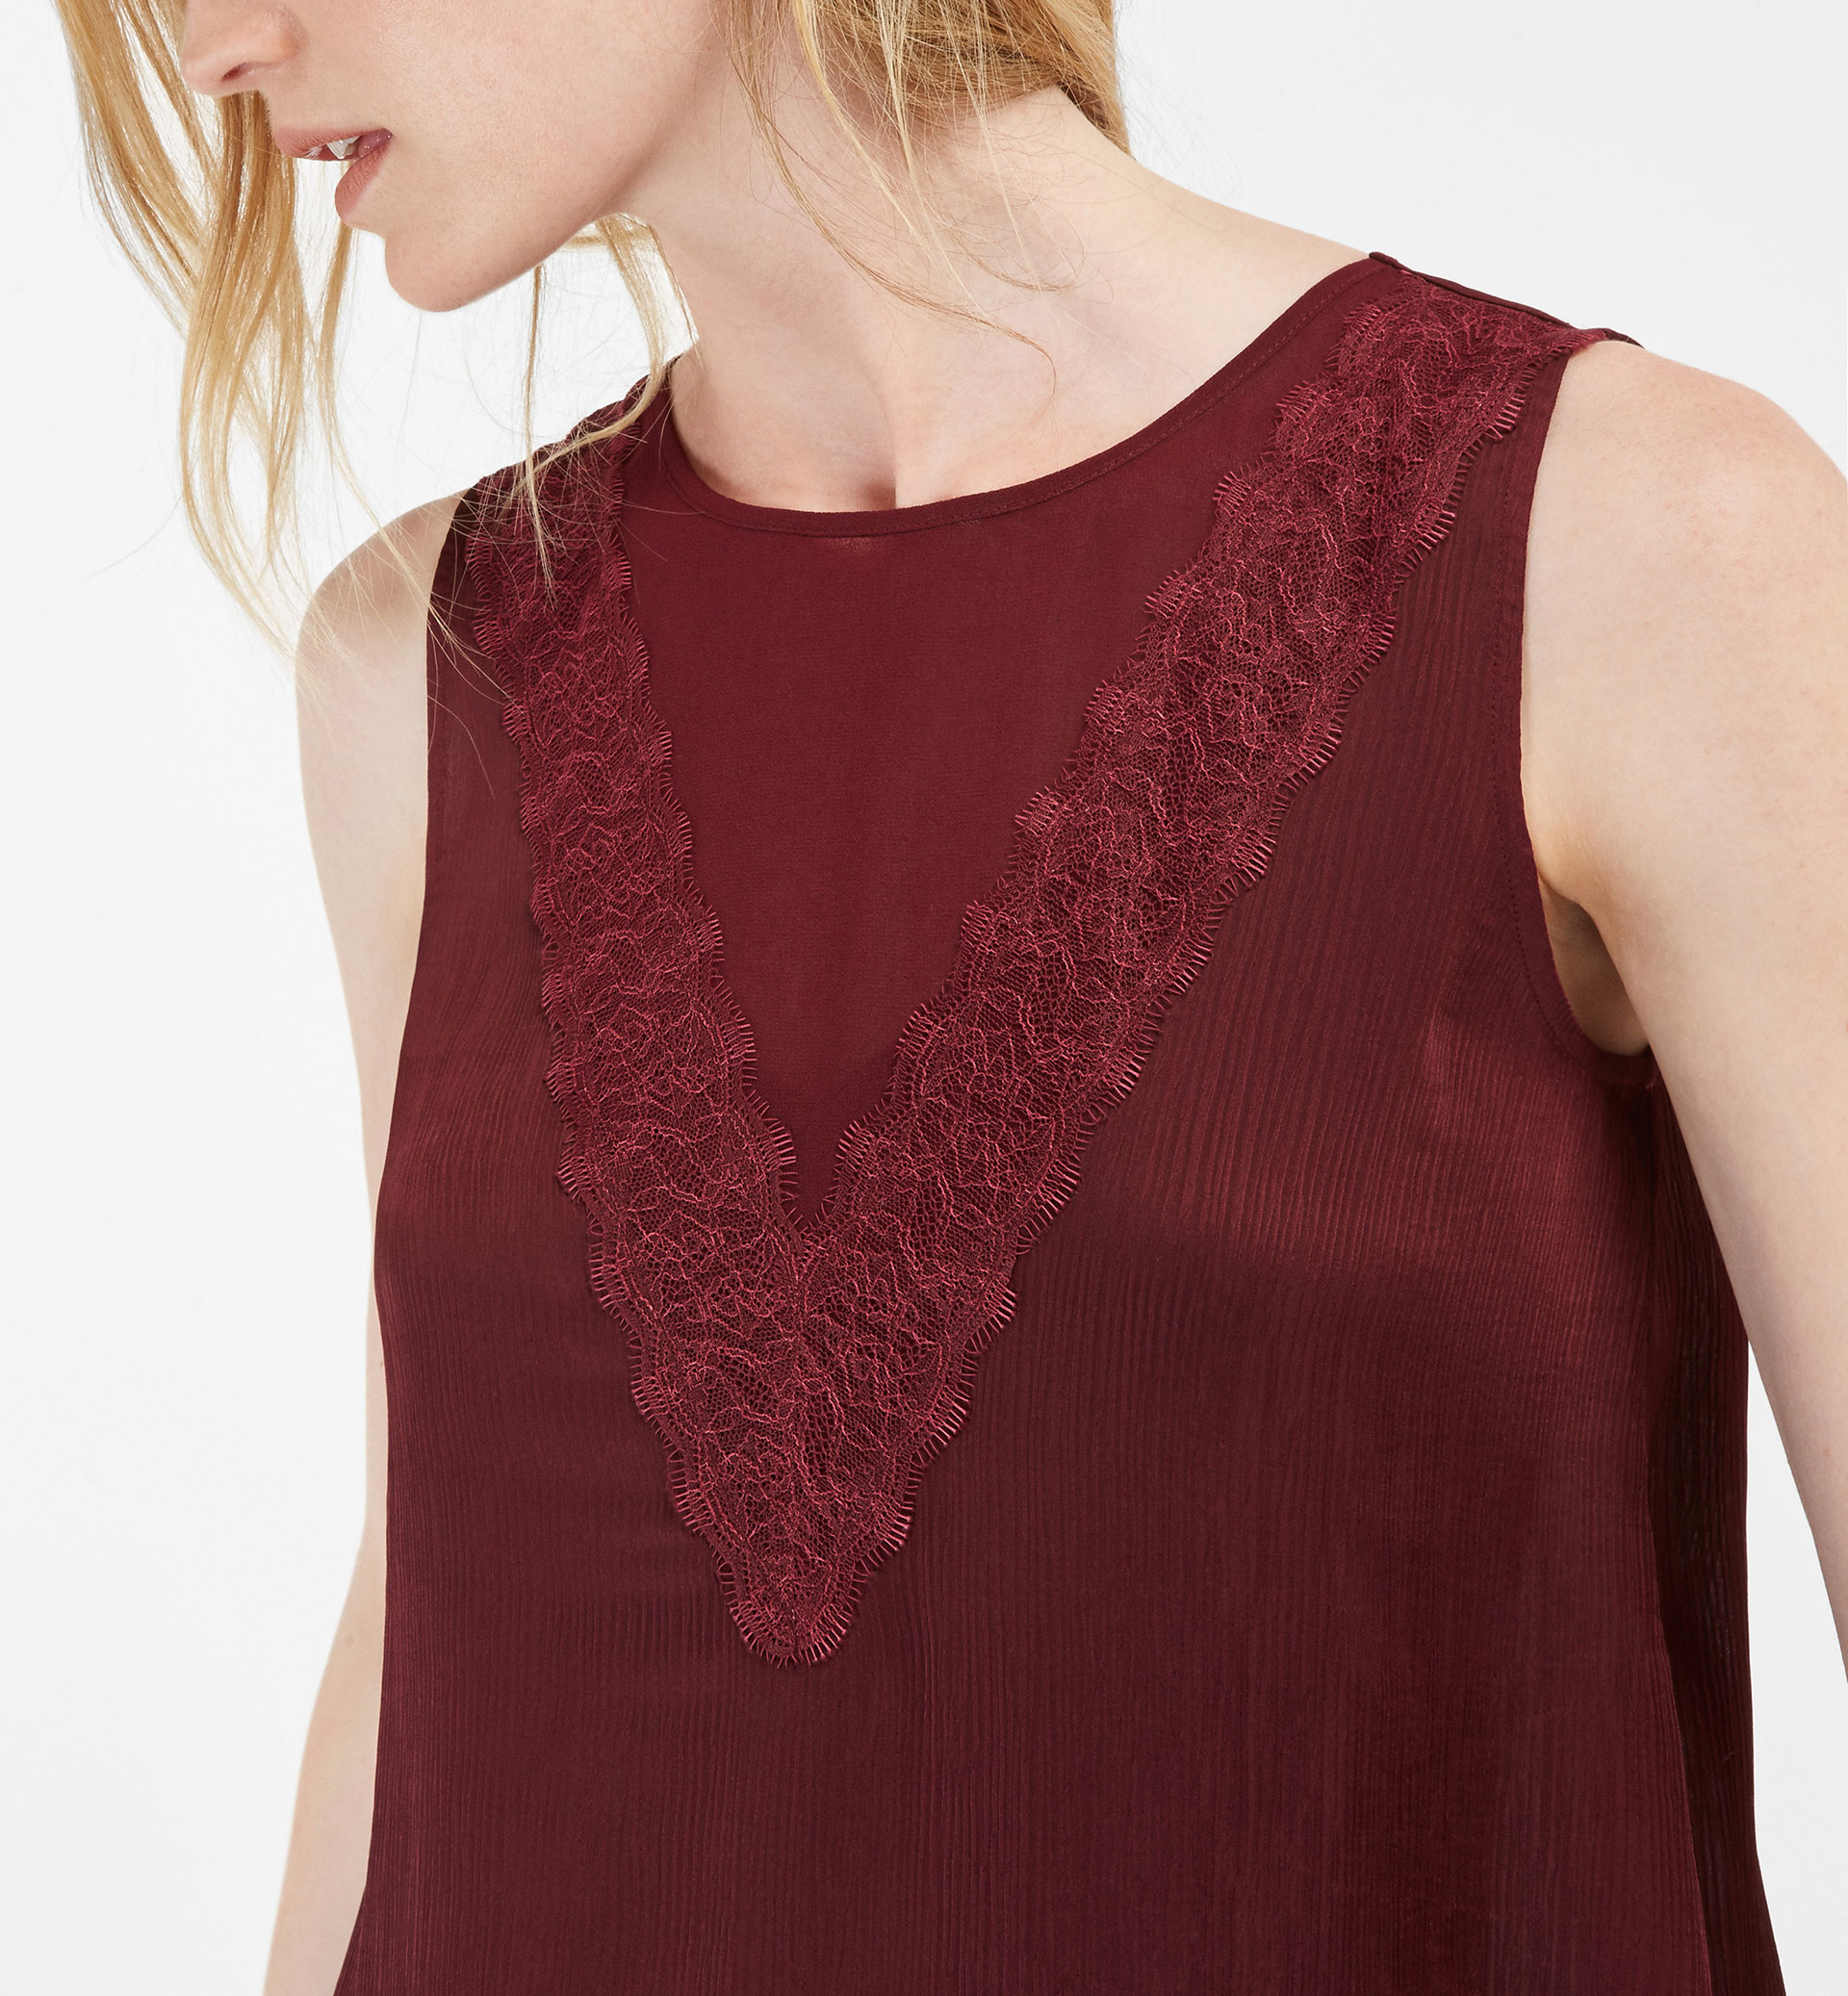 T-SHIRT WITH SHEER AND BLONDE LACE DETAIL